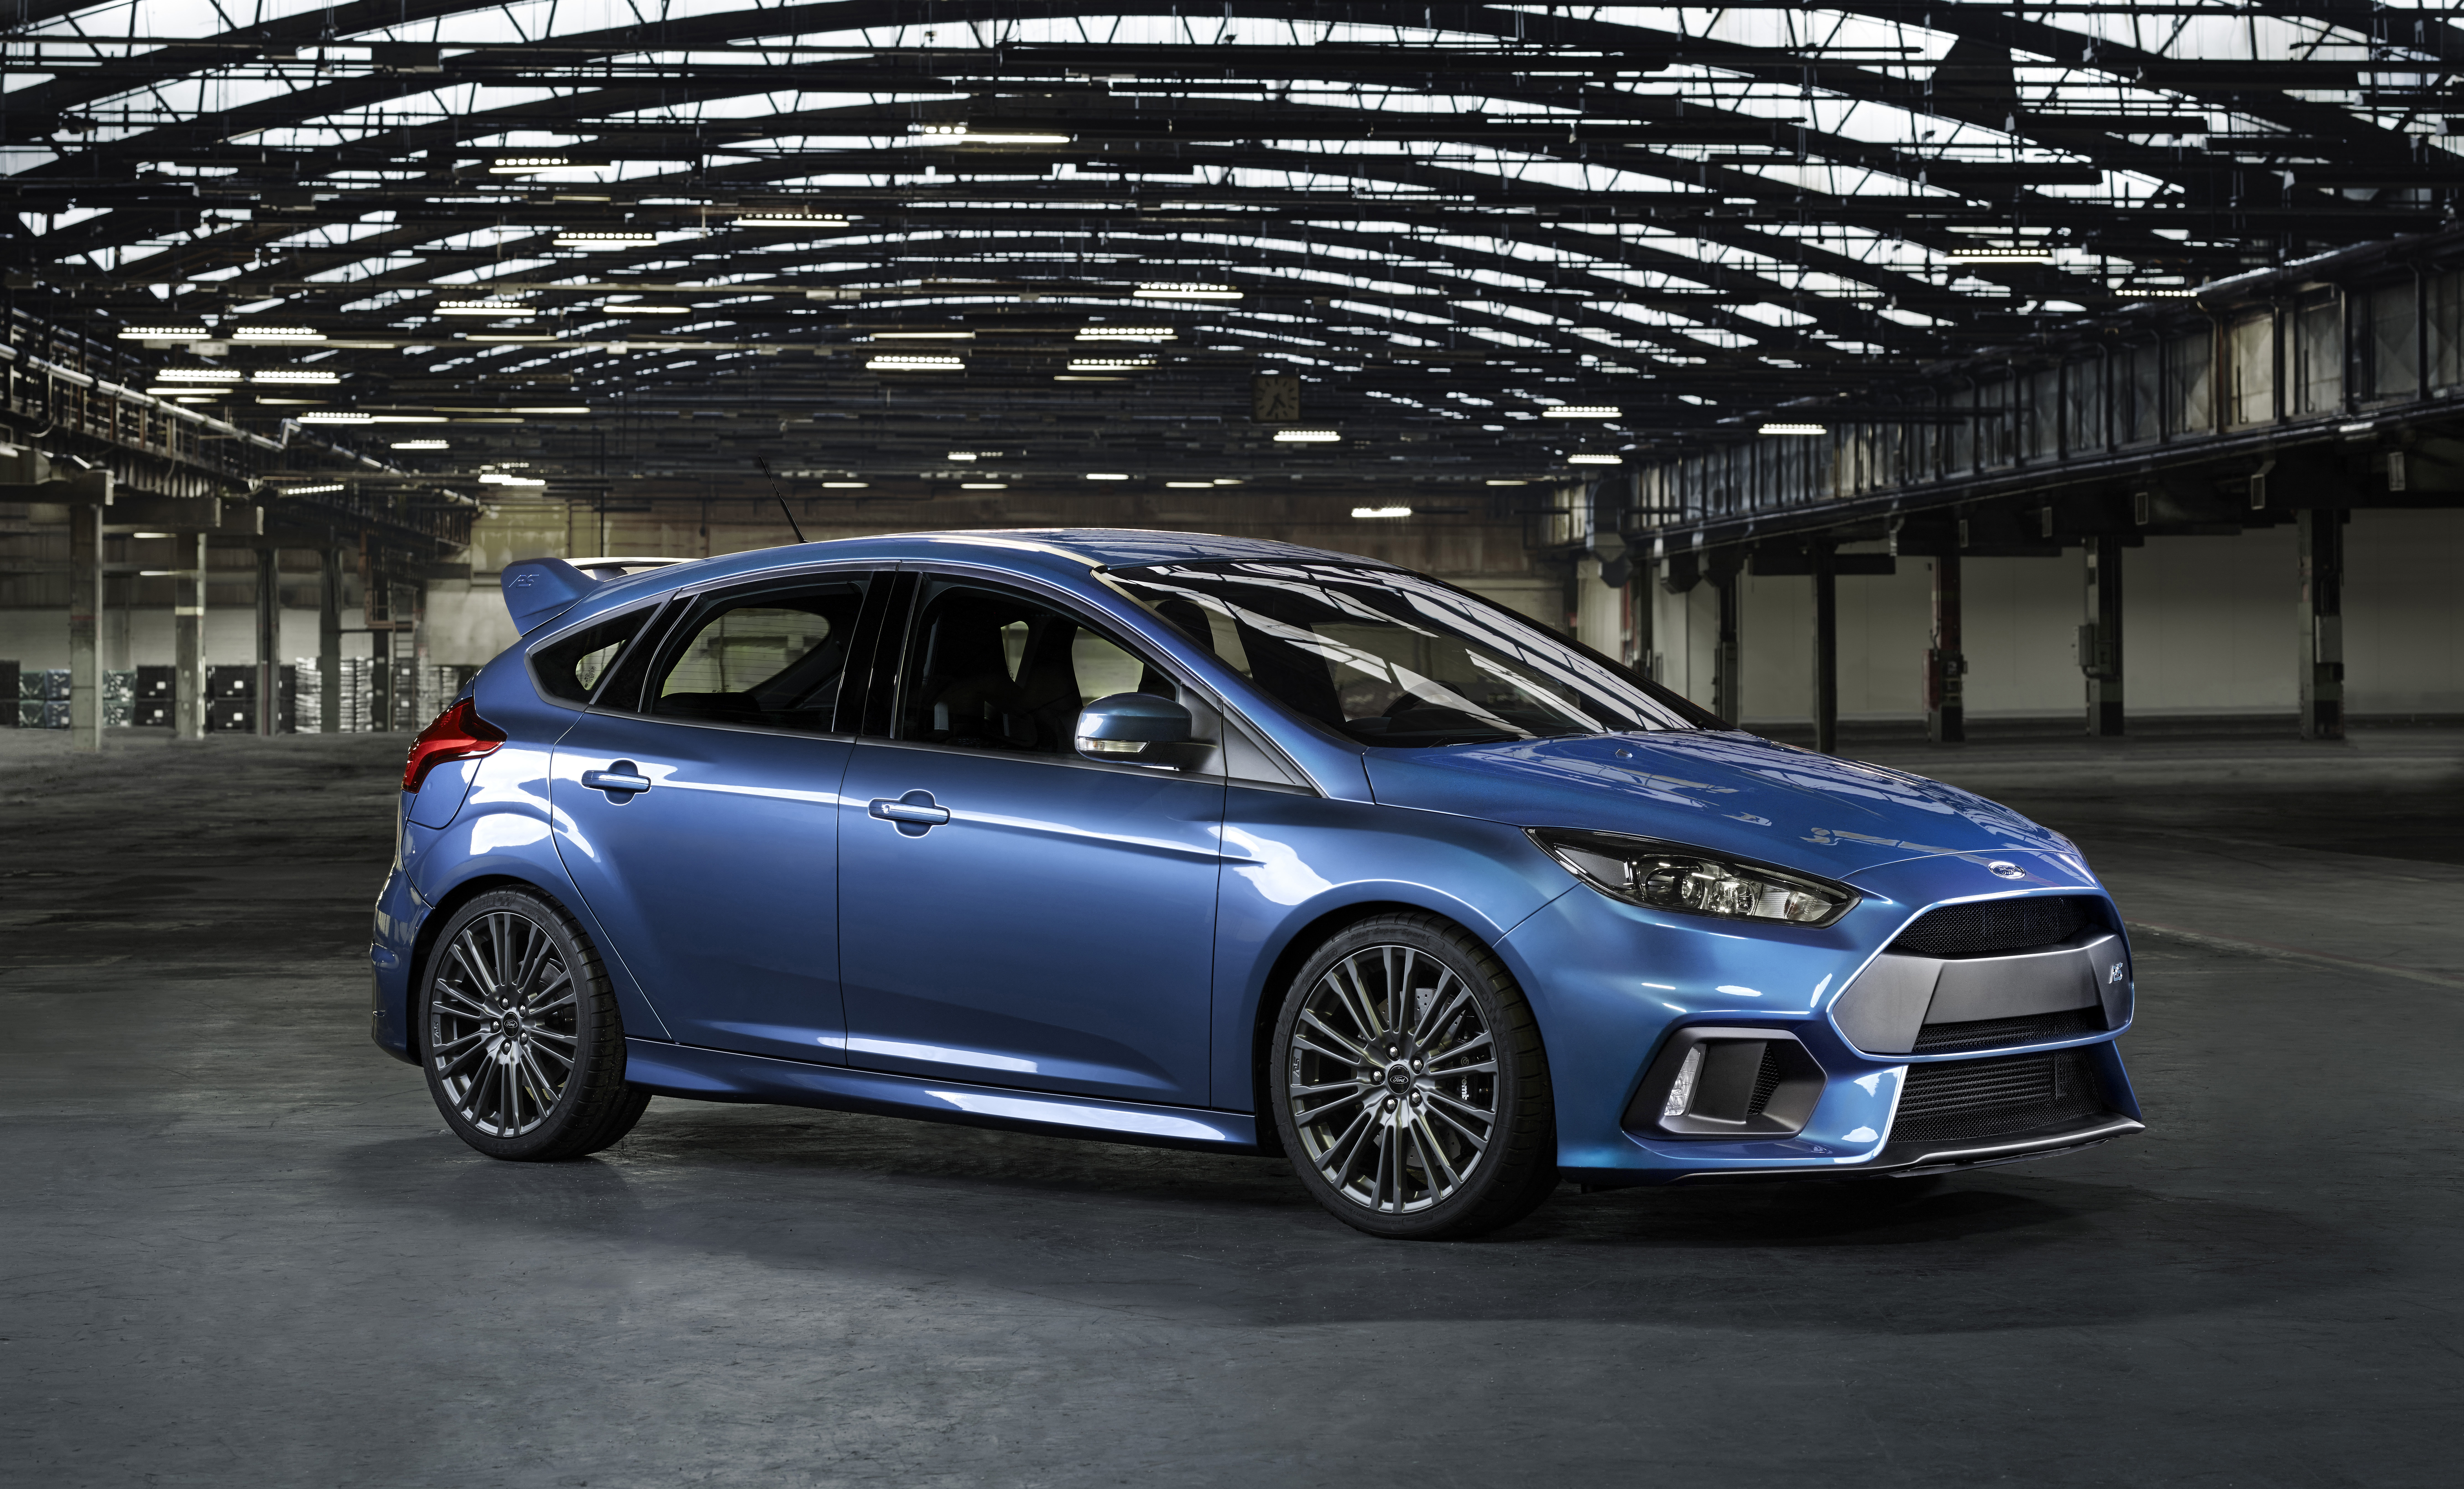 Ford Motor Company Monique Brentley 313.594.3744 mbrentle@ford.com or. Aaron Miller 313.845.4467 amill226@ford.com & All-New Ford Focus RS; High-Performance Hatch with Innovative All ... markmcfarlin.com